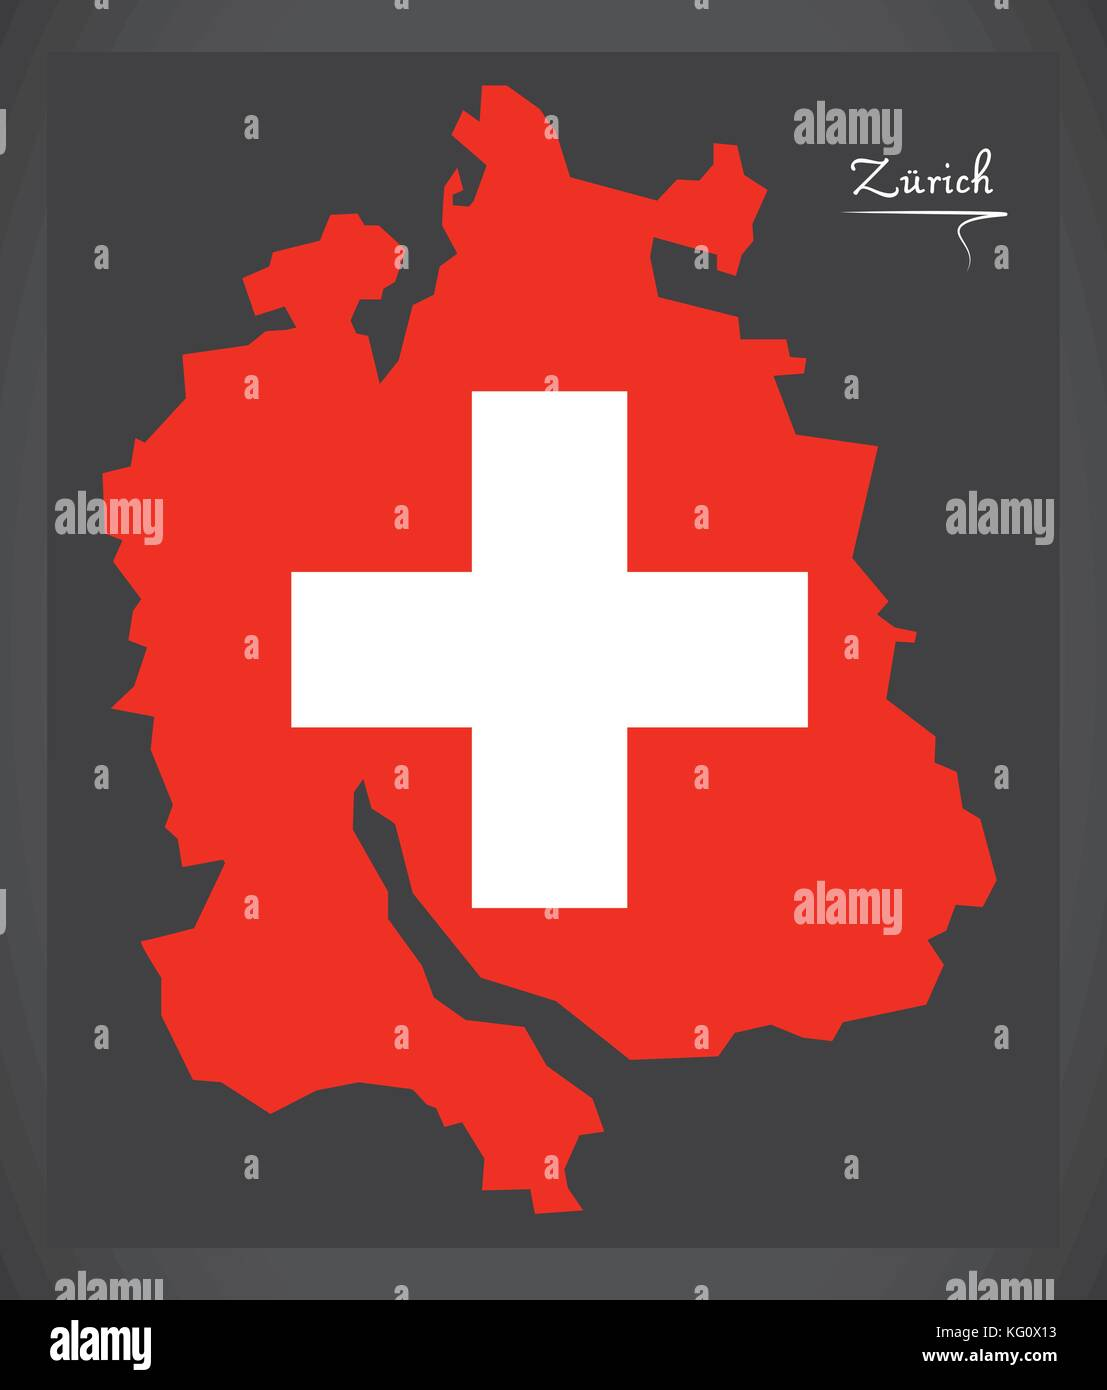 Zuerich map of Switzerland with Swiss national flag illustration - Stock Vector